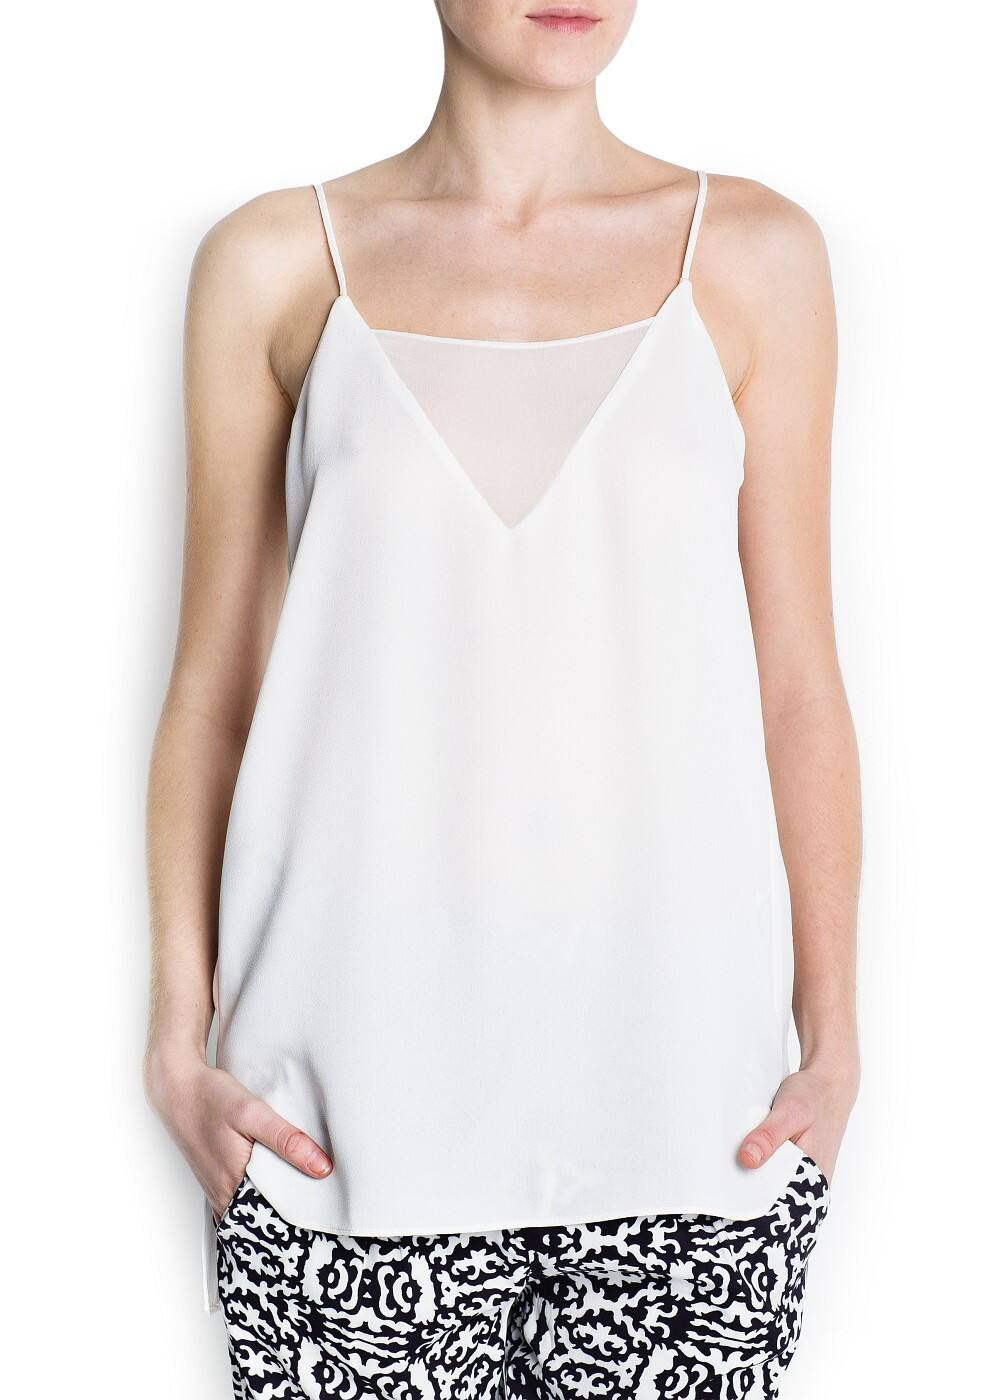 Asymmetric light top